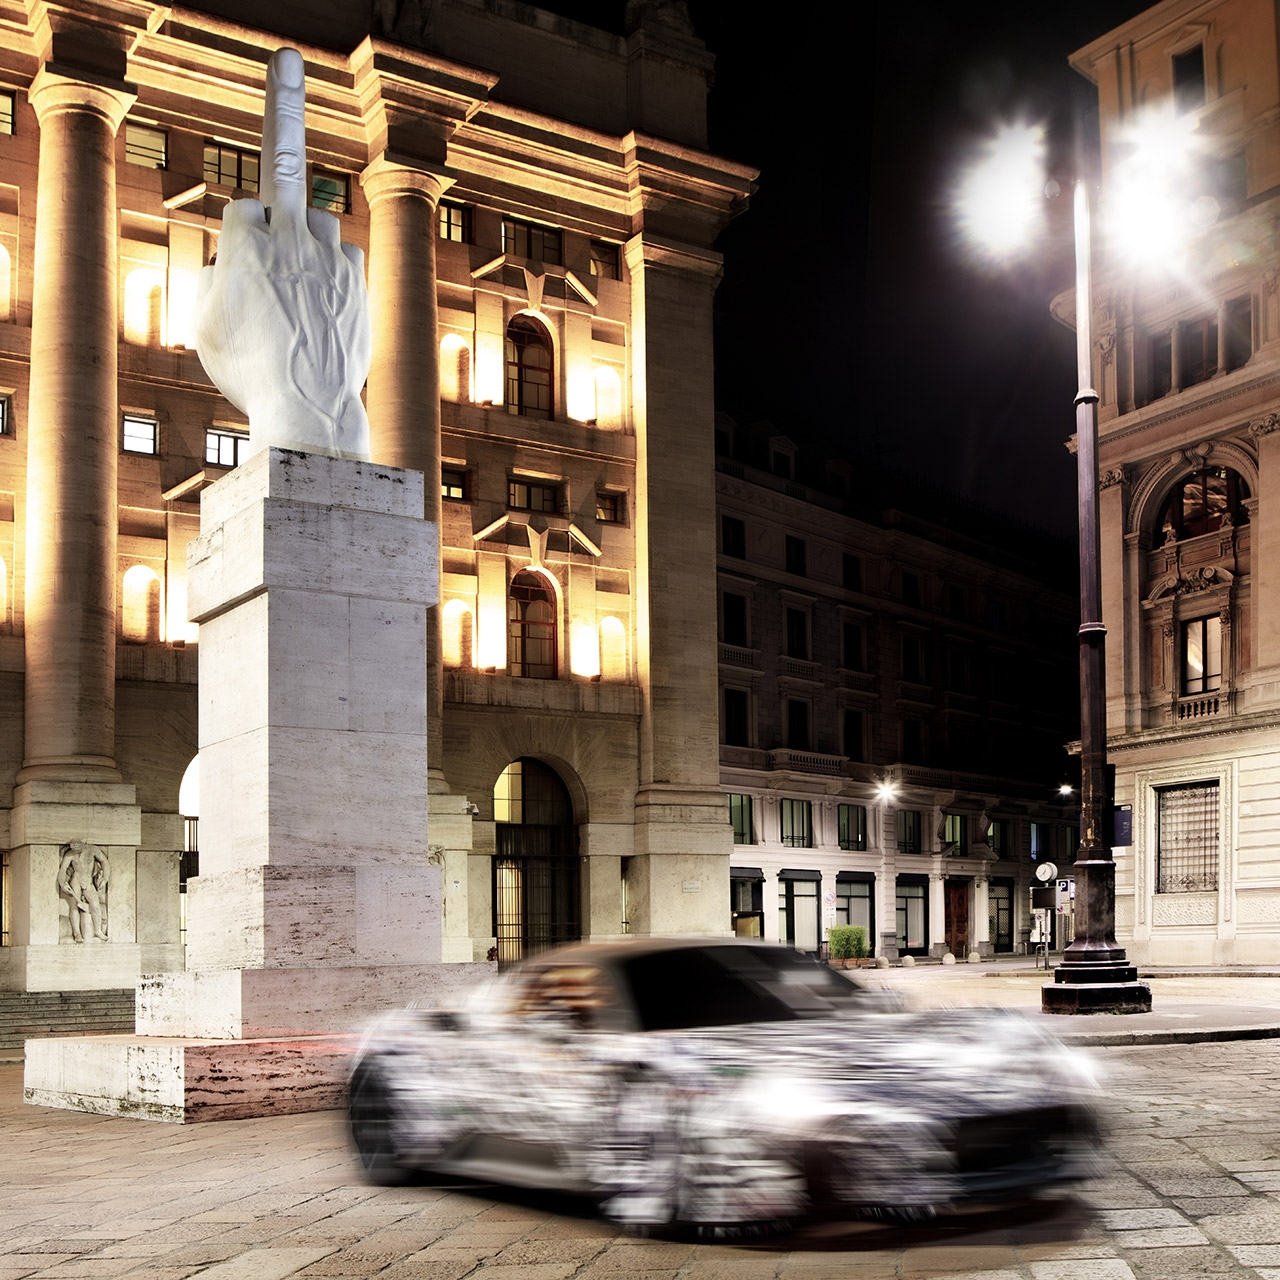 New Maserati MC20 (2020) super sports car prototype testing in Milan - Car next to Cattelan's L.O.V.E sculpture.